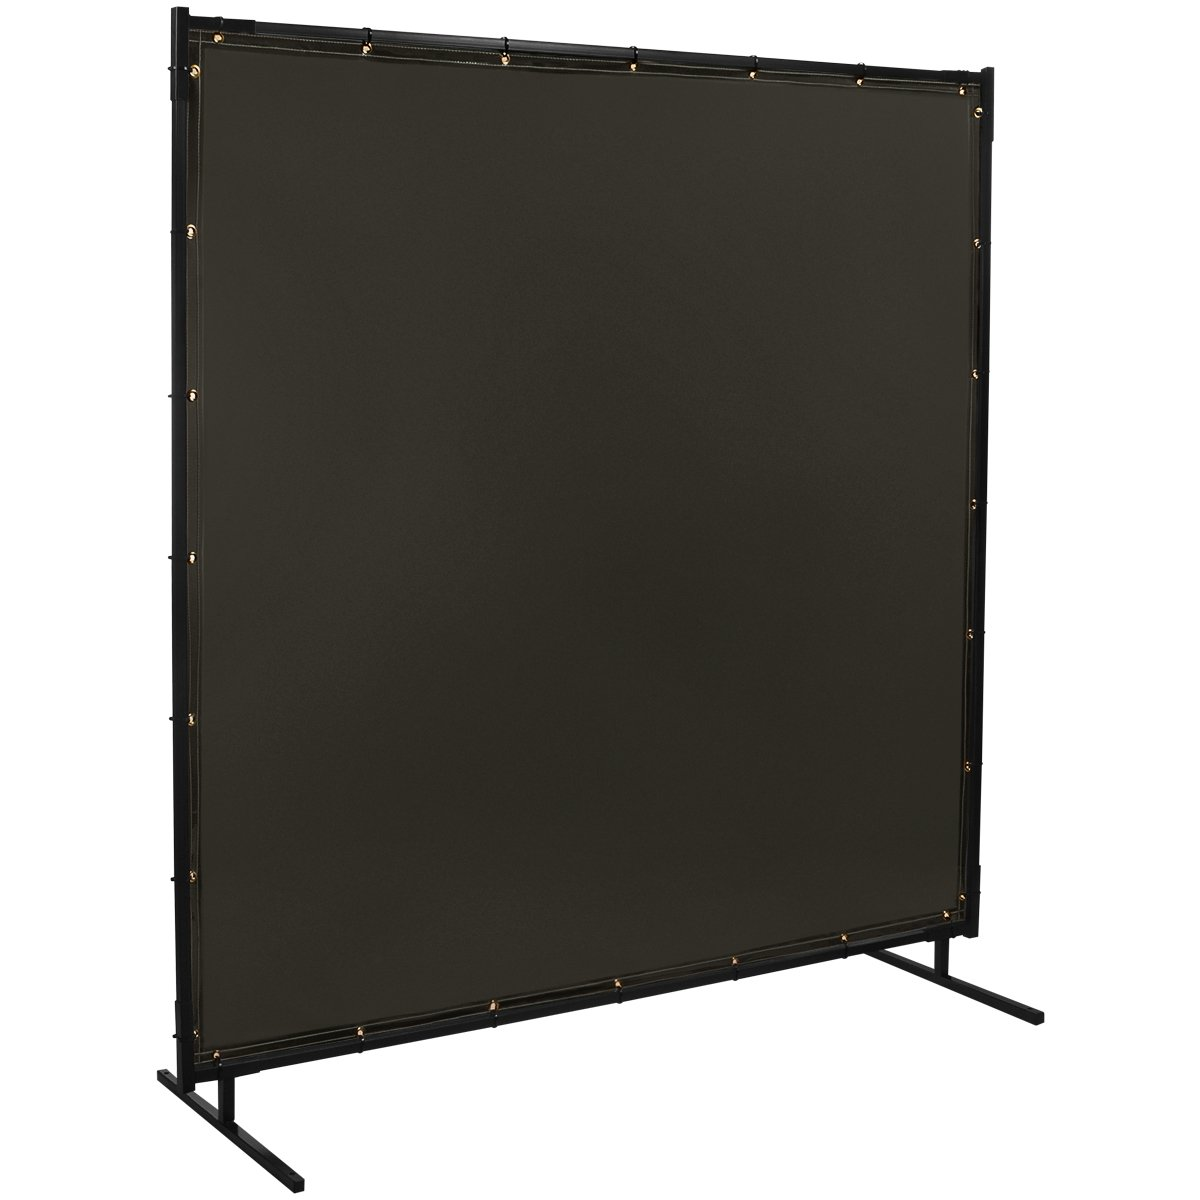 Steiner 532-4X5 Protect-O-Screen Classic Welding Screen with Flame Retardant 14 Mil Tinted Transparent Vinyl Curtain, Gray, 4' x 5'